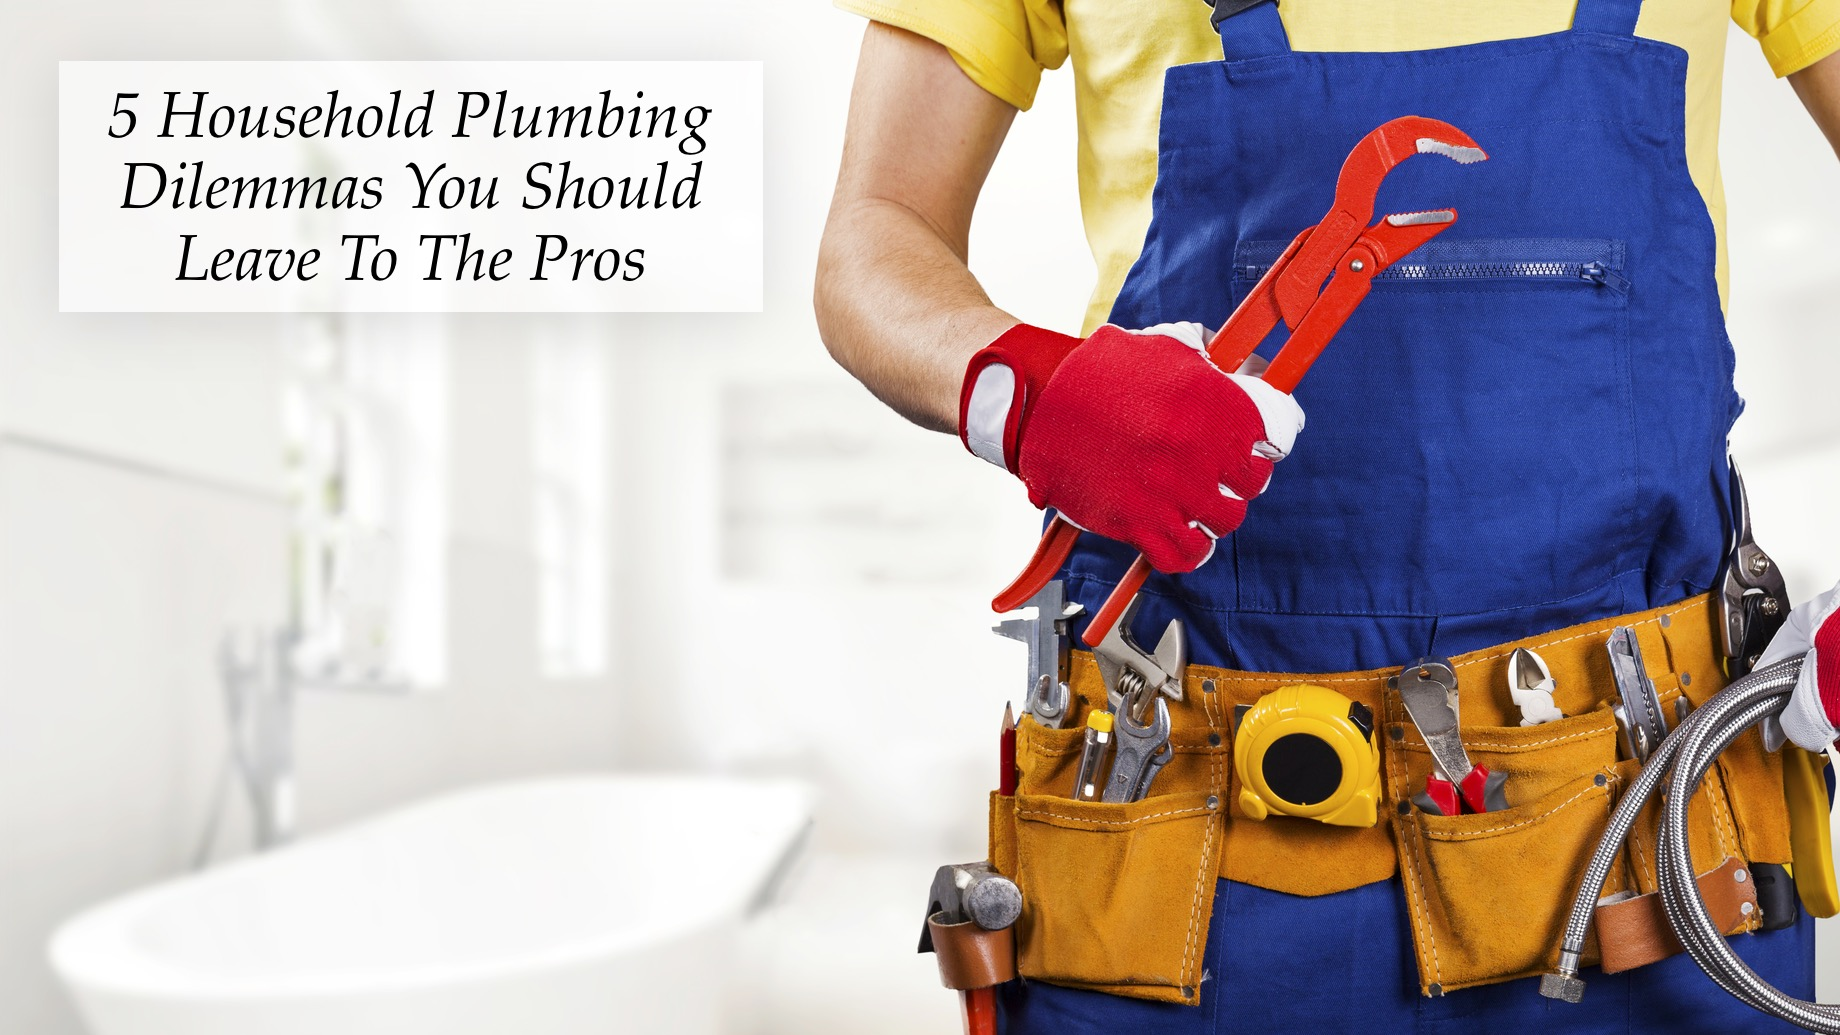 5 Household Plumbing Dilemmas You Should Leave To The Pros